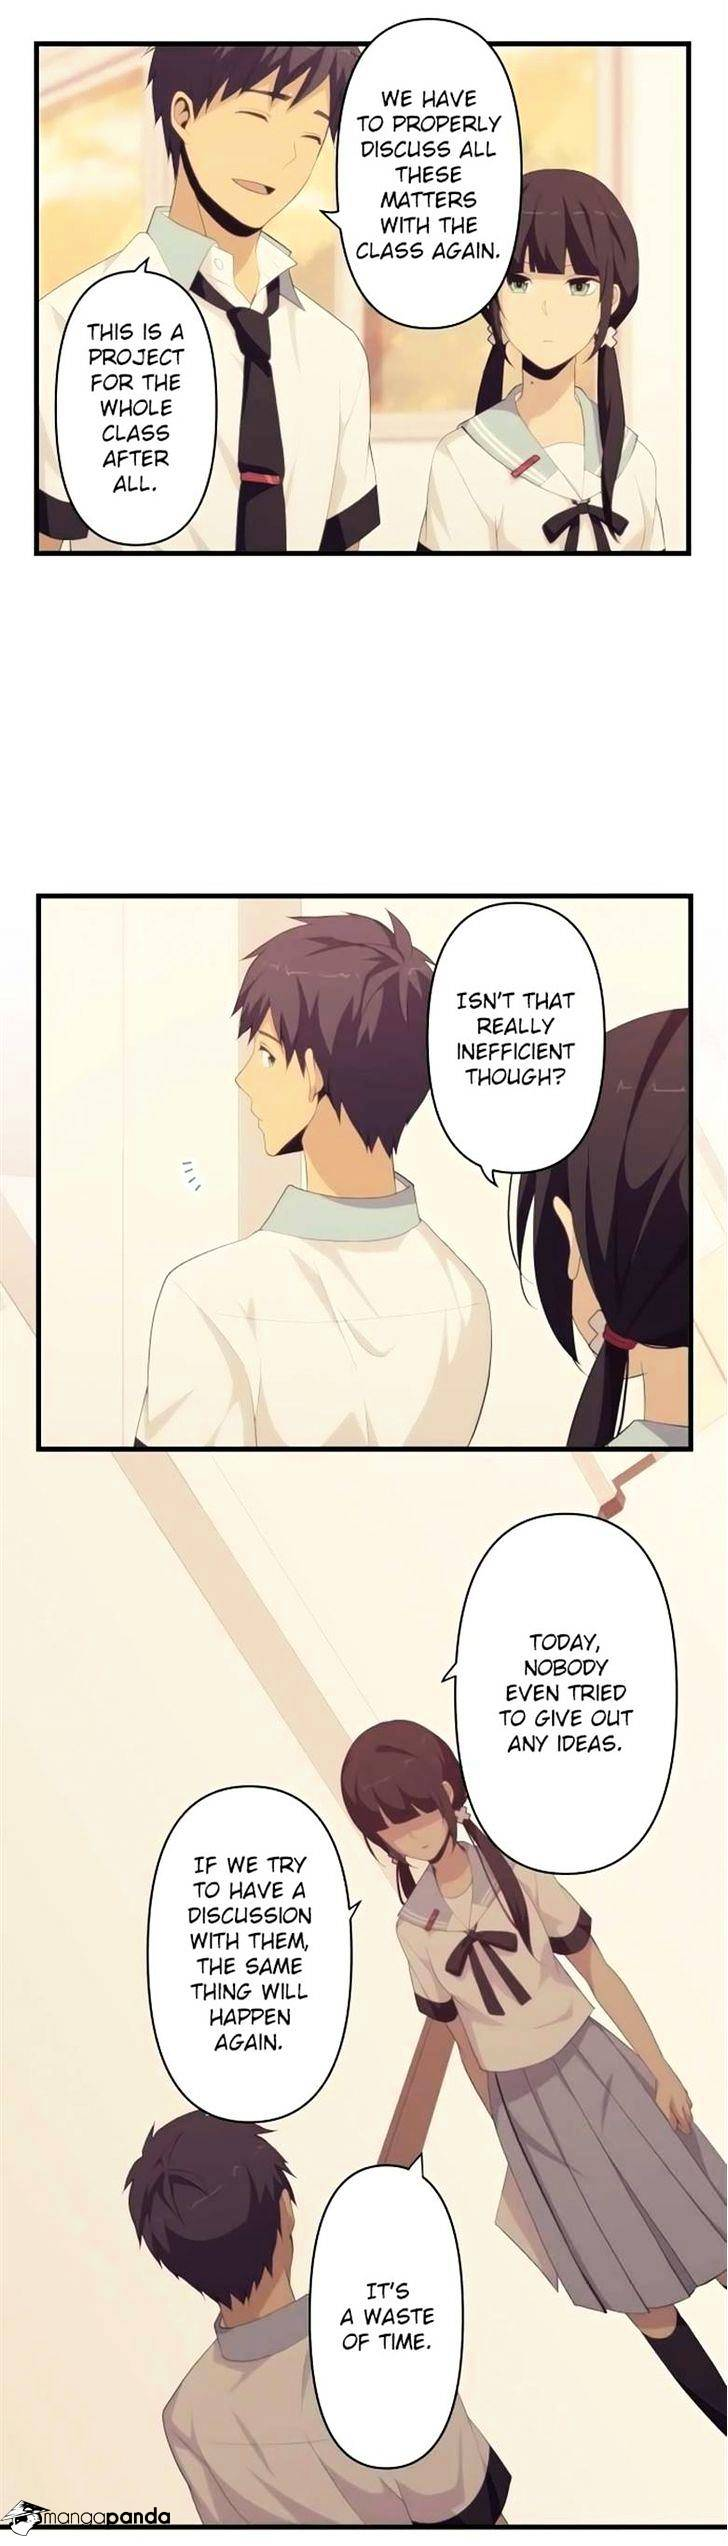 ReLIFE Chapter 130  Online Free Manga Read Image 10